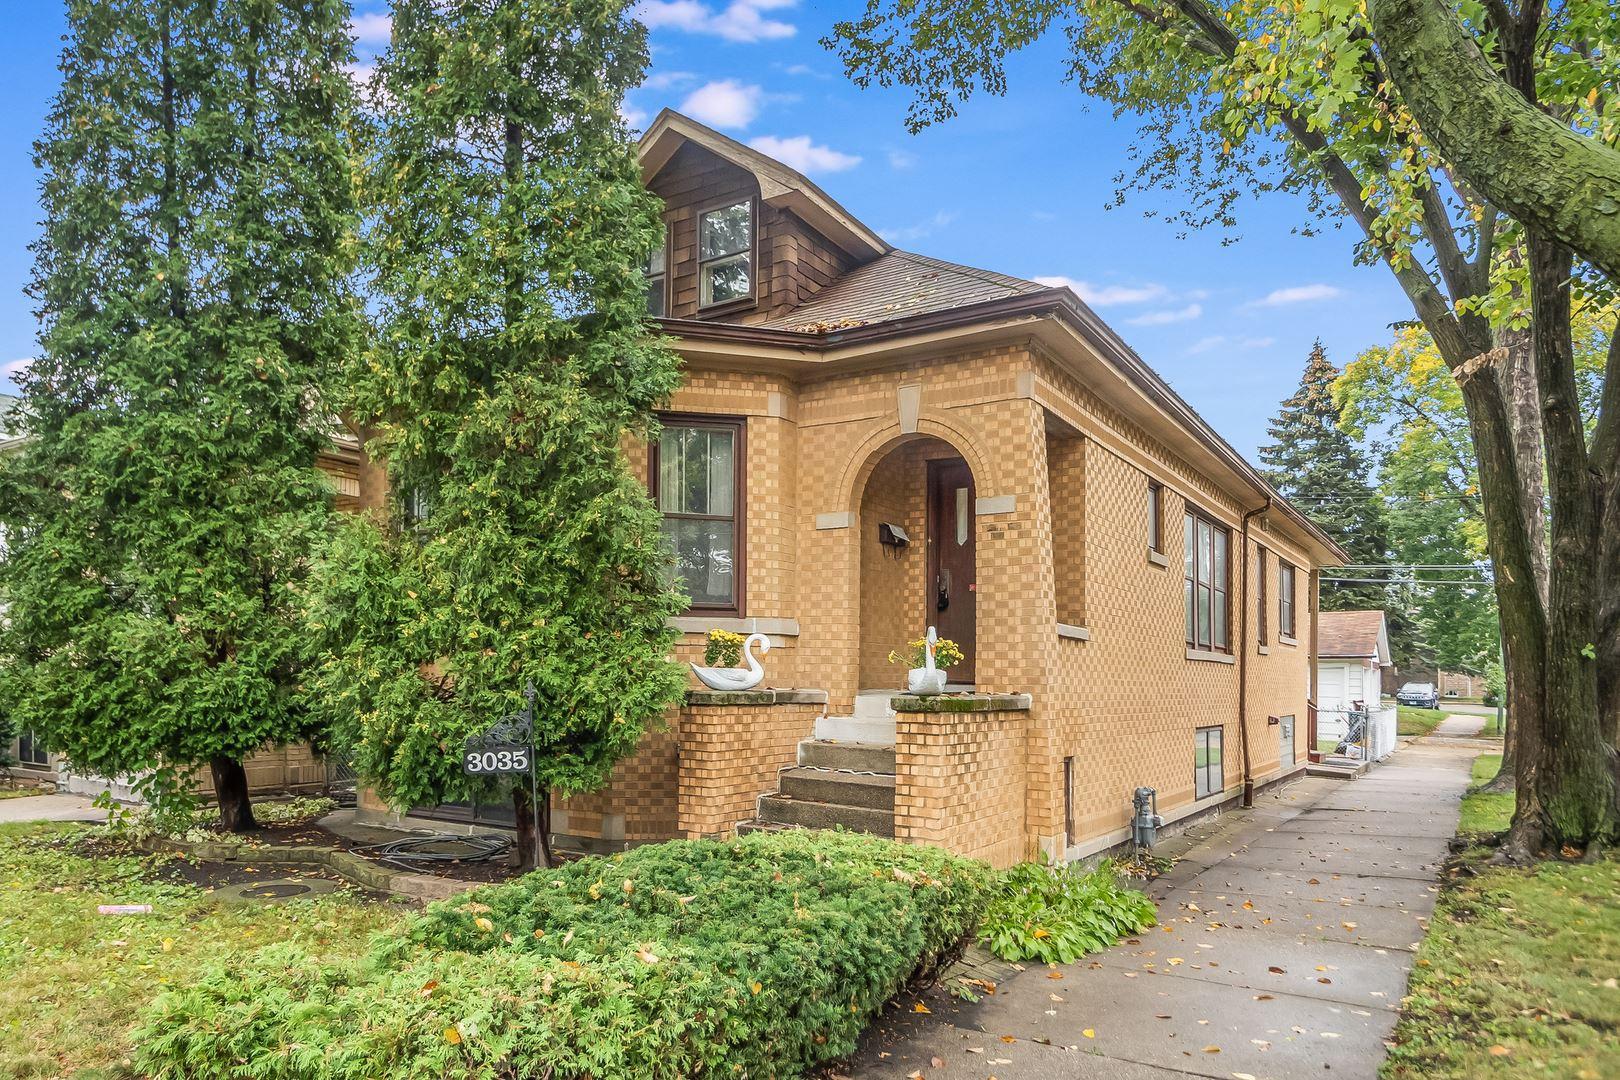 3035 N Lowell Avenue, Chicago, IL 60641 - #: 11244934